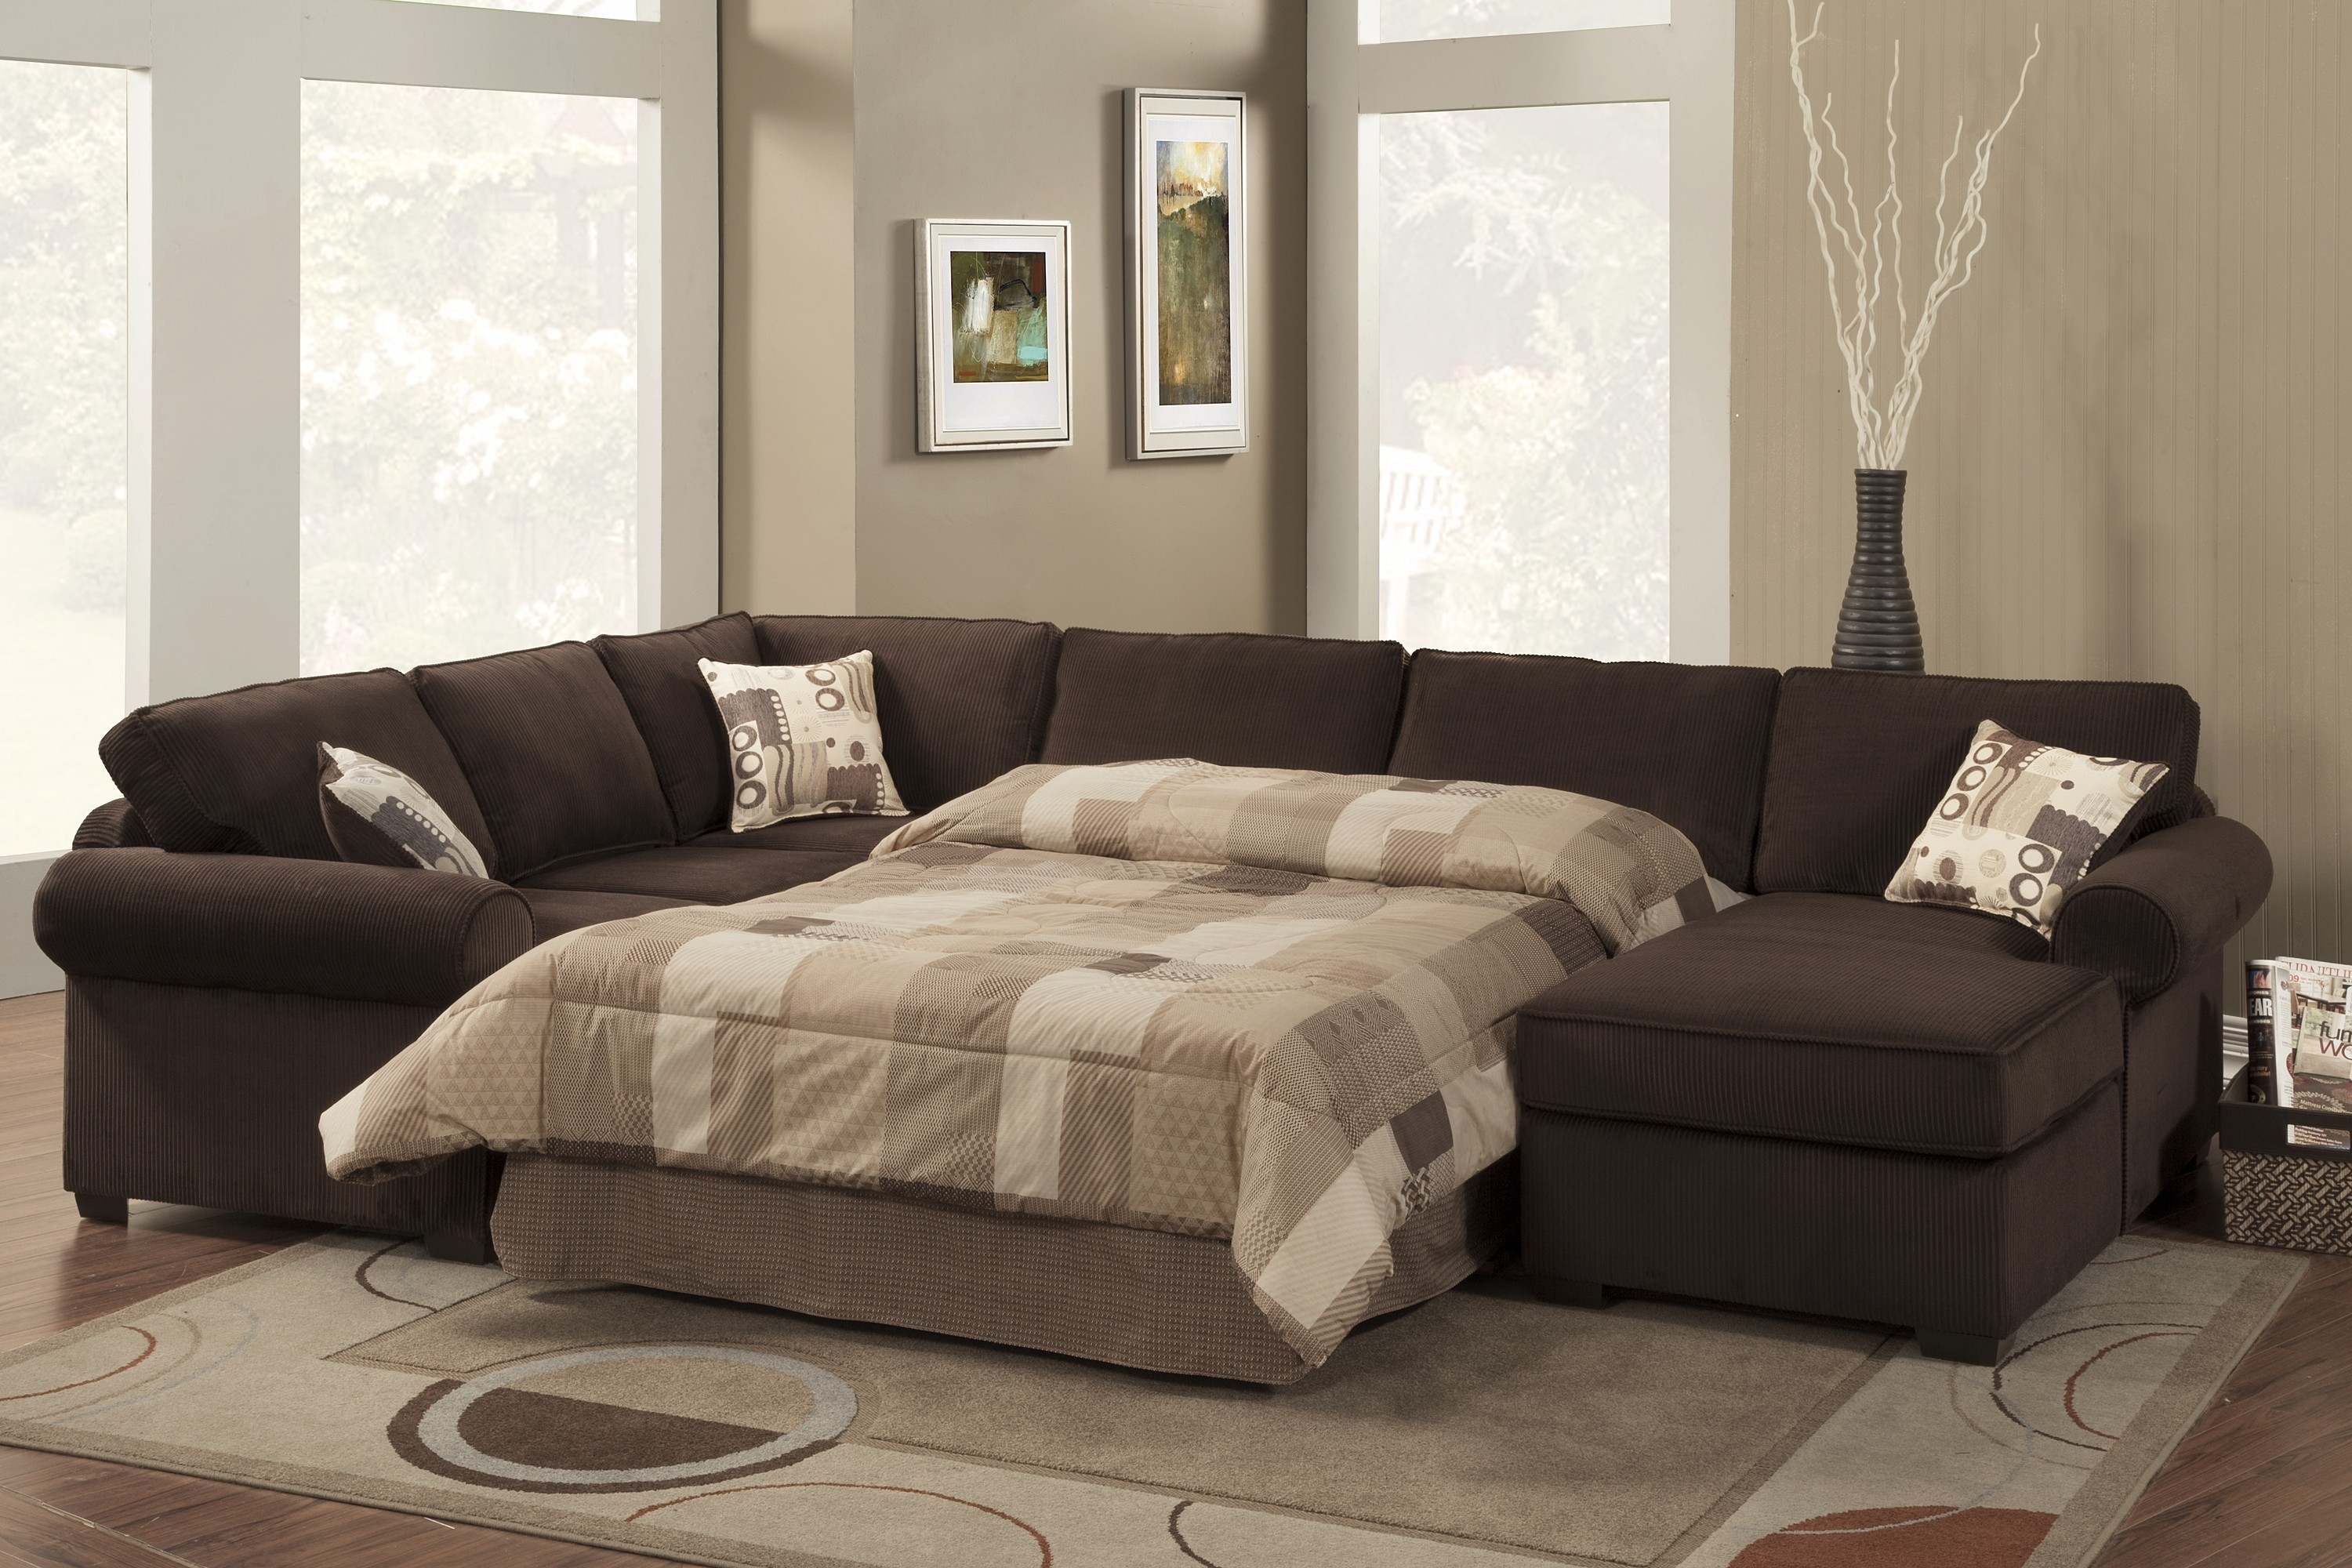 Astounding Sectional Sofas With Sleeper Bed 13 With Additional Small With Portland Or Sectional Sofas (Image 1 of 10)